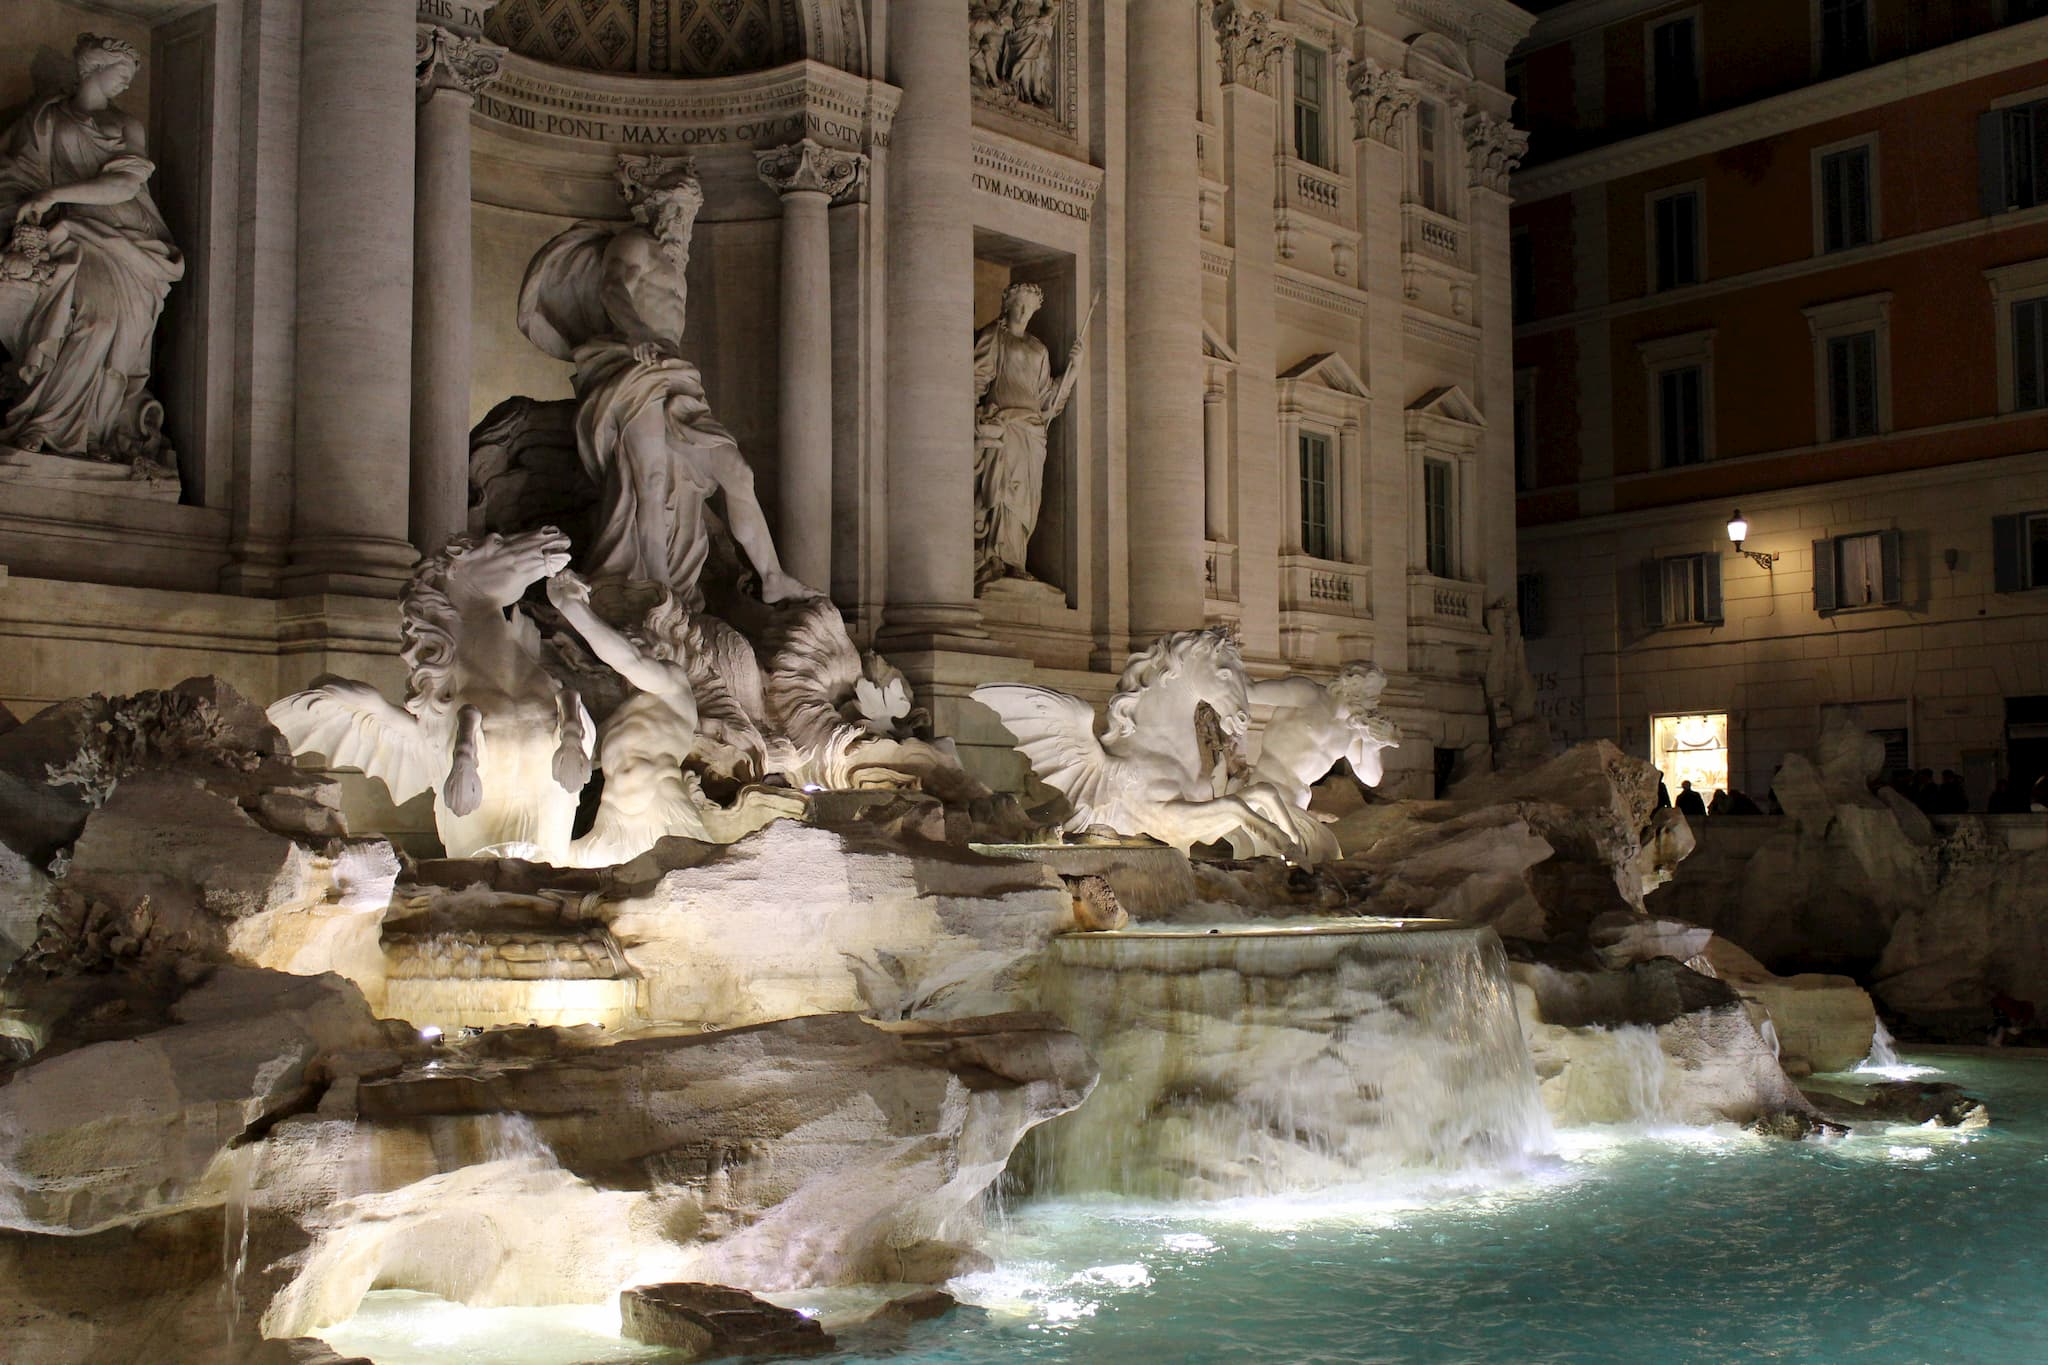 Marble carved statues forming a fountain behind a pool of water lit up in the nighttime